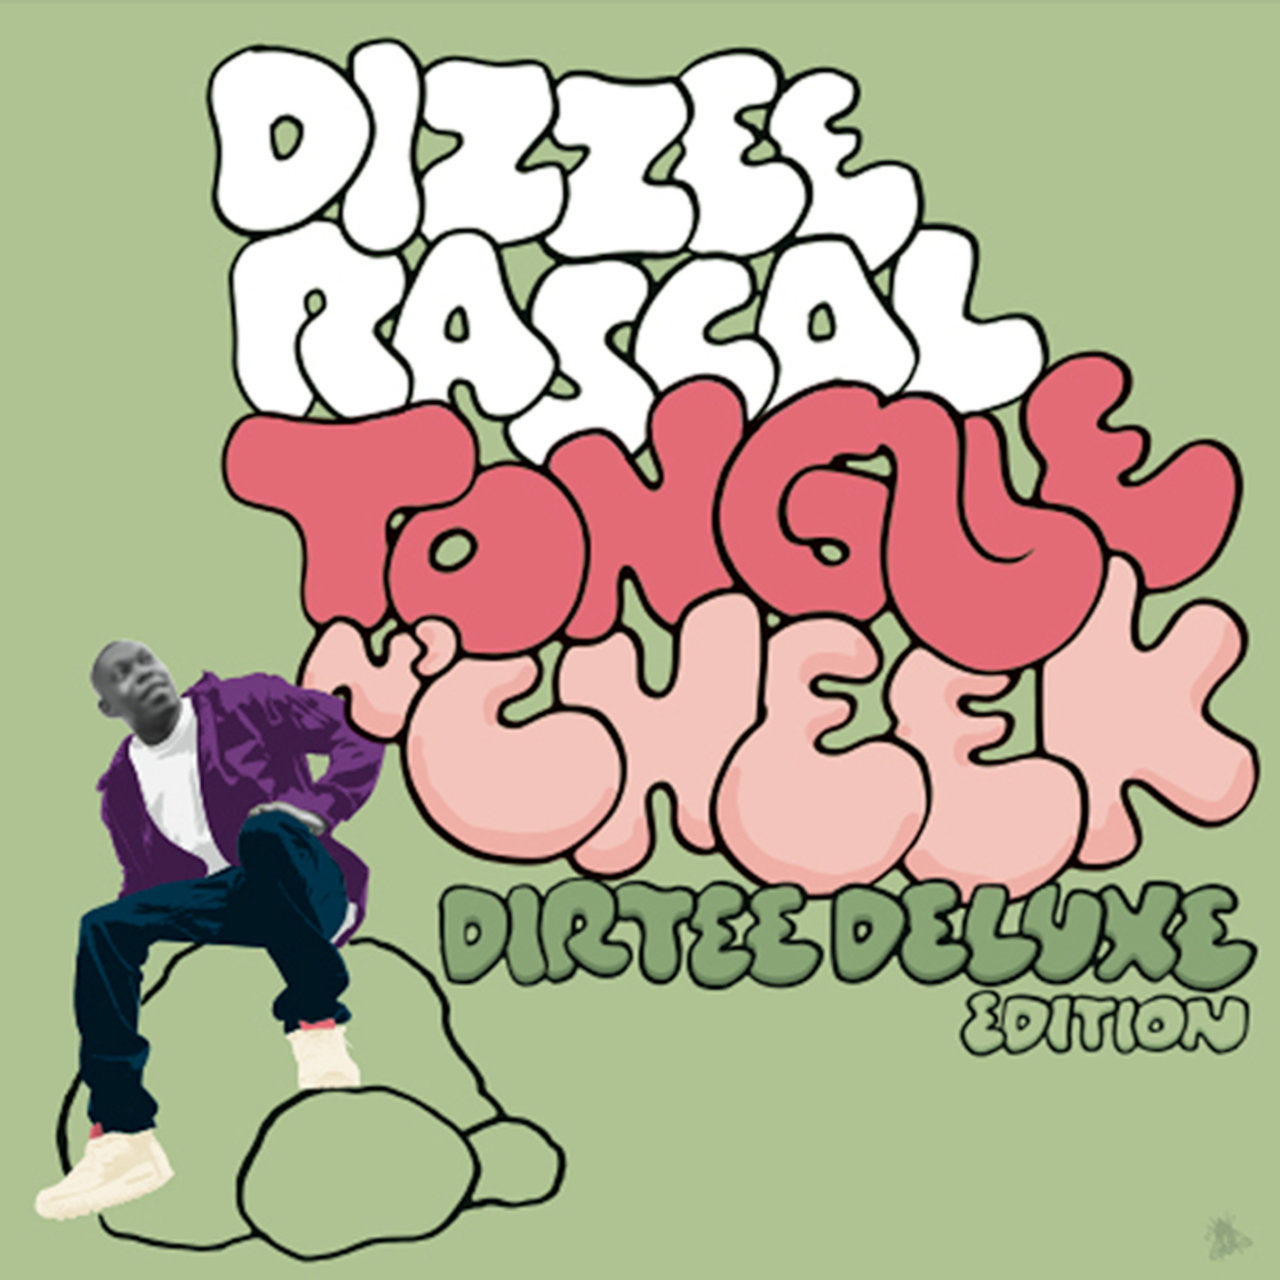 Tongue N' Cheek (Dirtee Deluxe Edition)